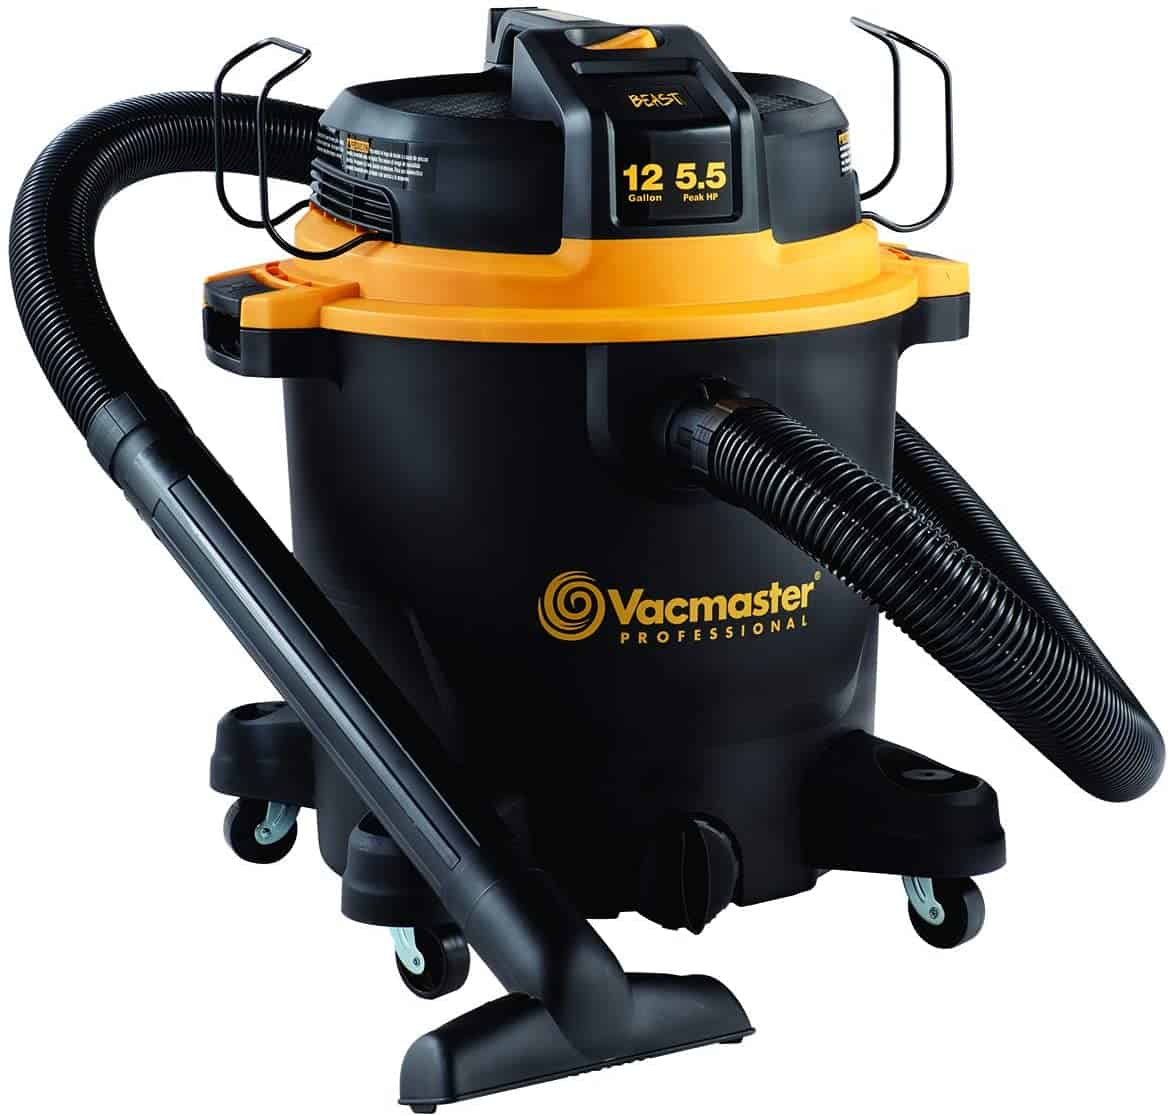 Vacmaster professional wet:dry vac